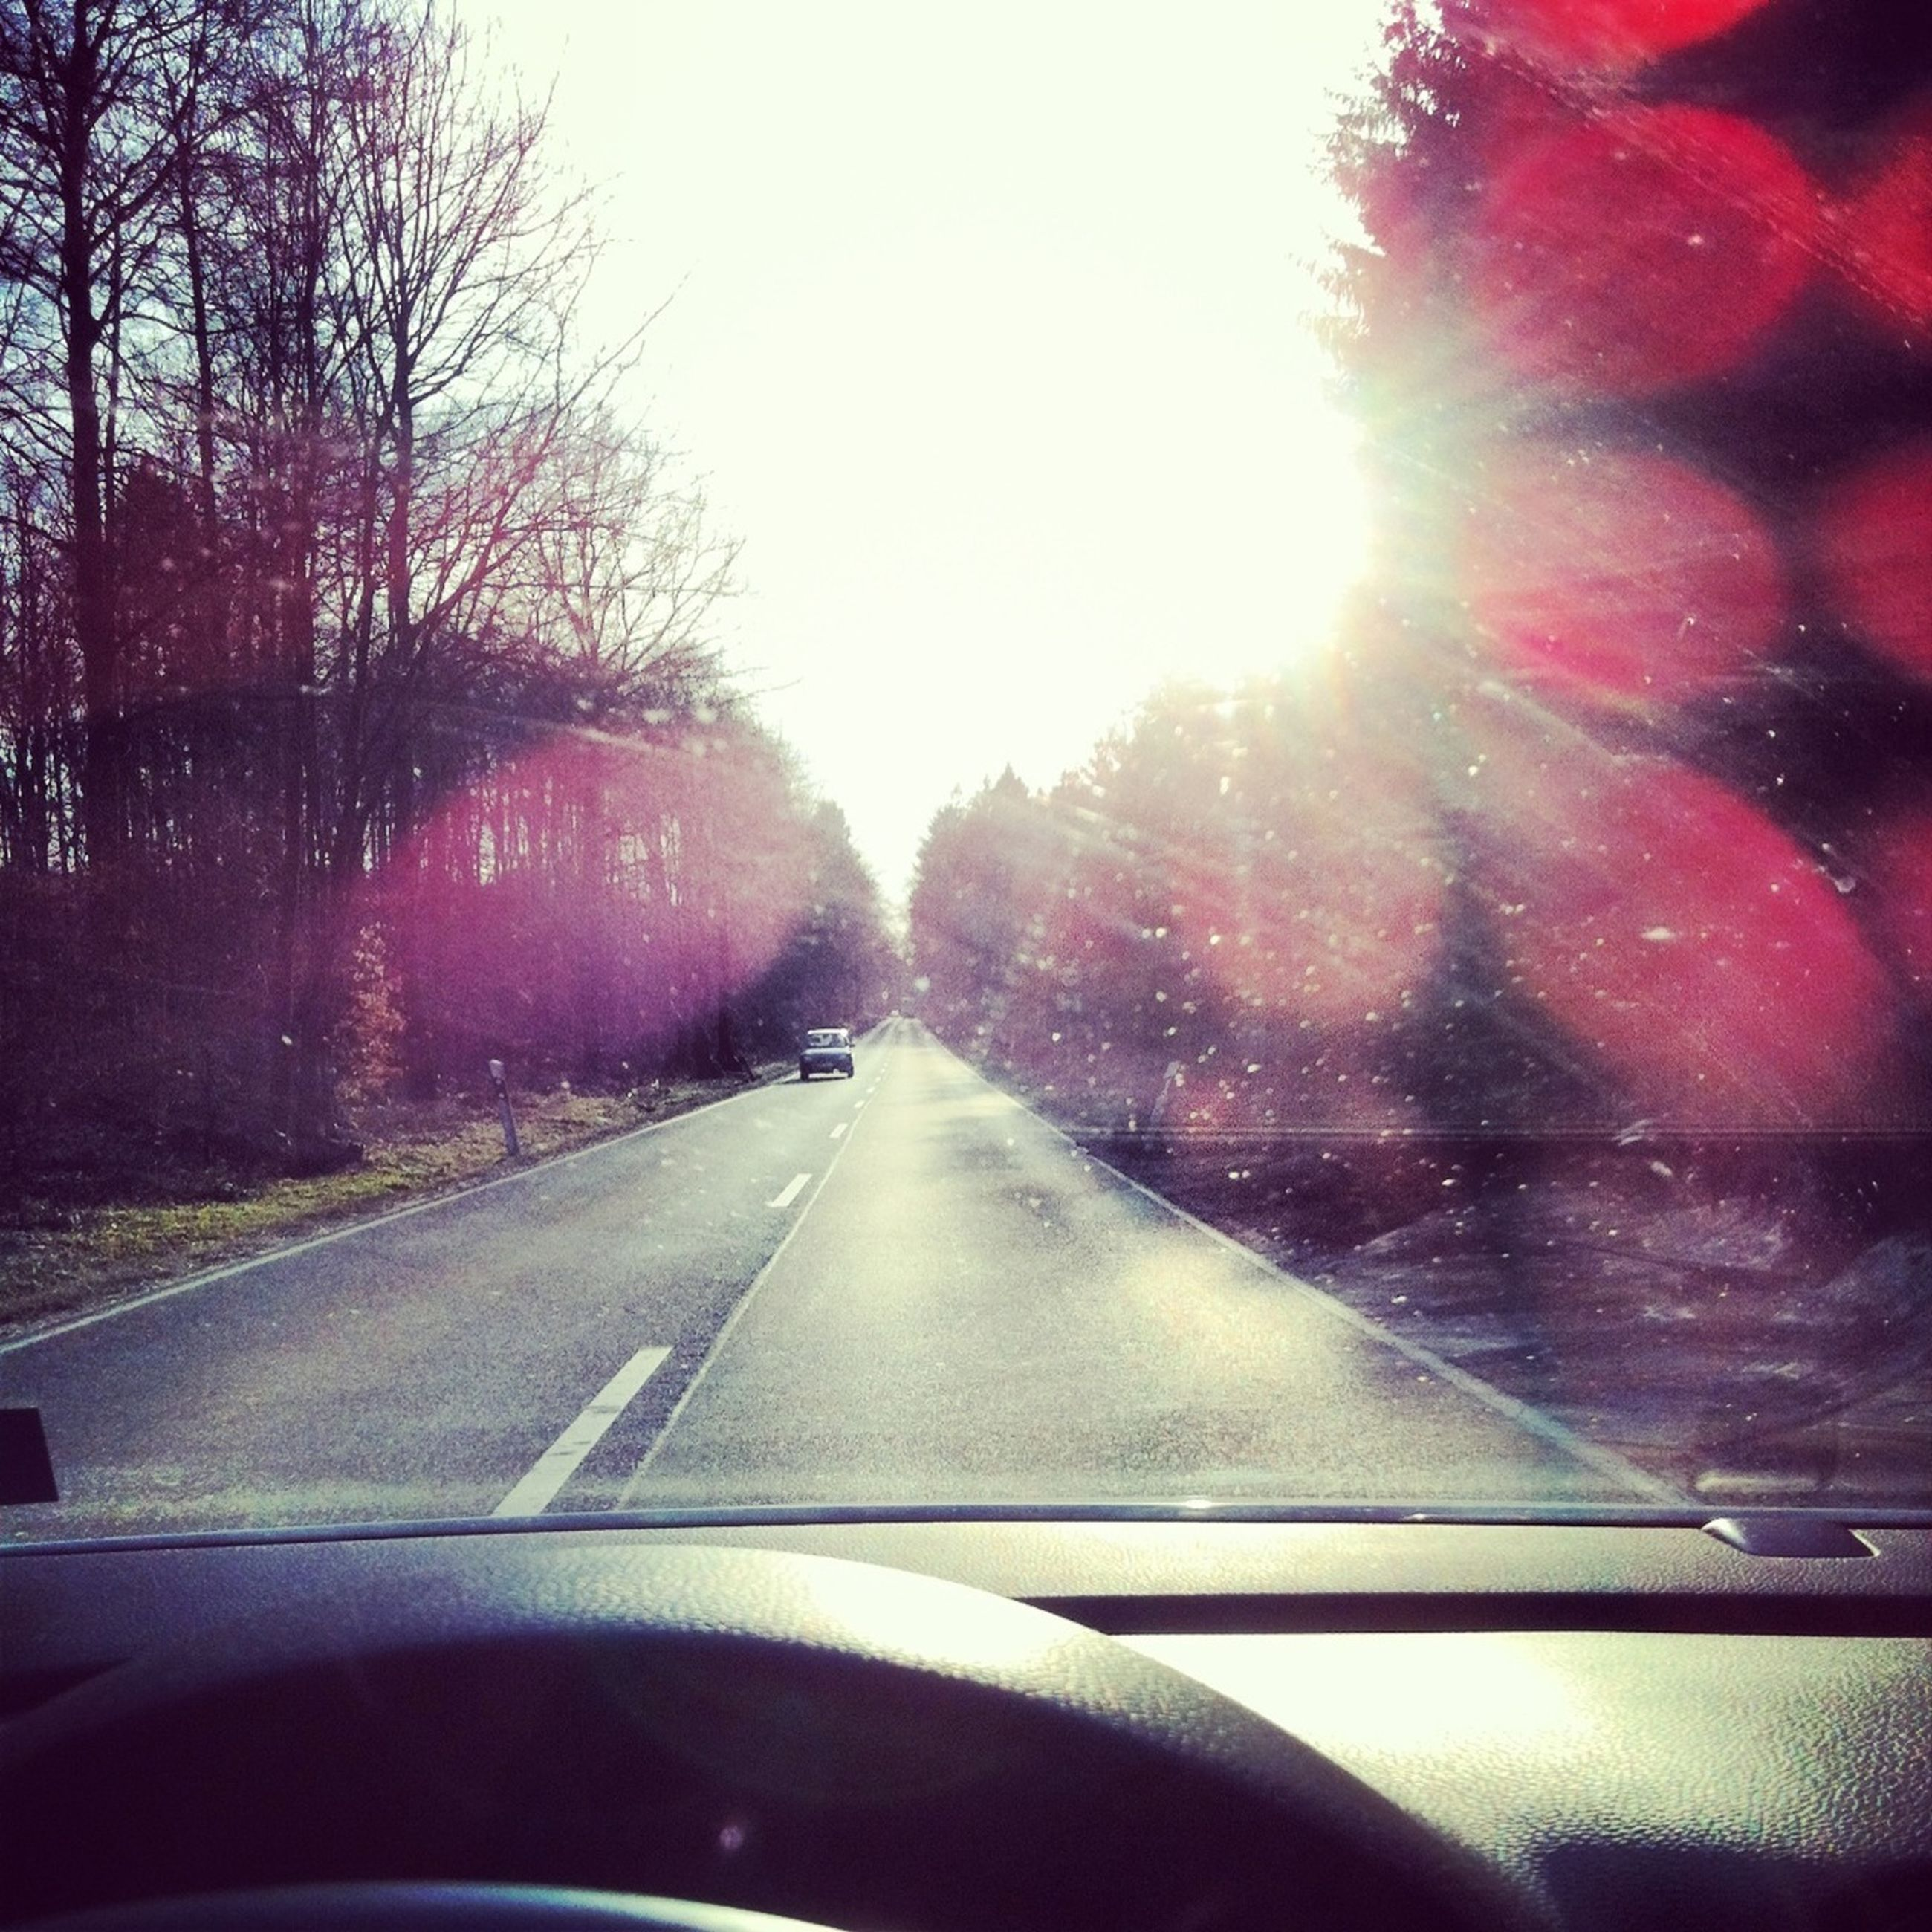 transportation, car, mode of transport, land vehicle, windshield, vehicle interior, car interior, glass - material, road, tree, transparent, sun, window, travel, sunlight, car point of view, road marking, clear sky, on the move, sky